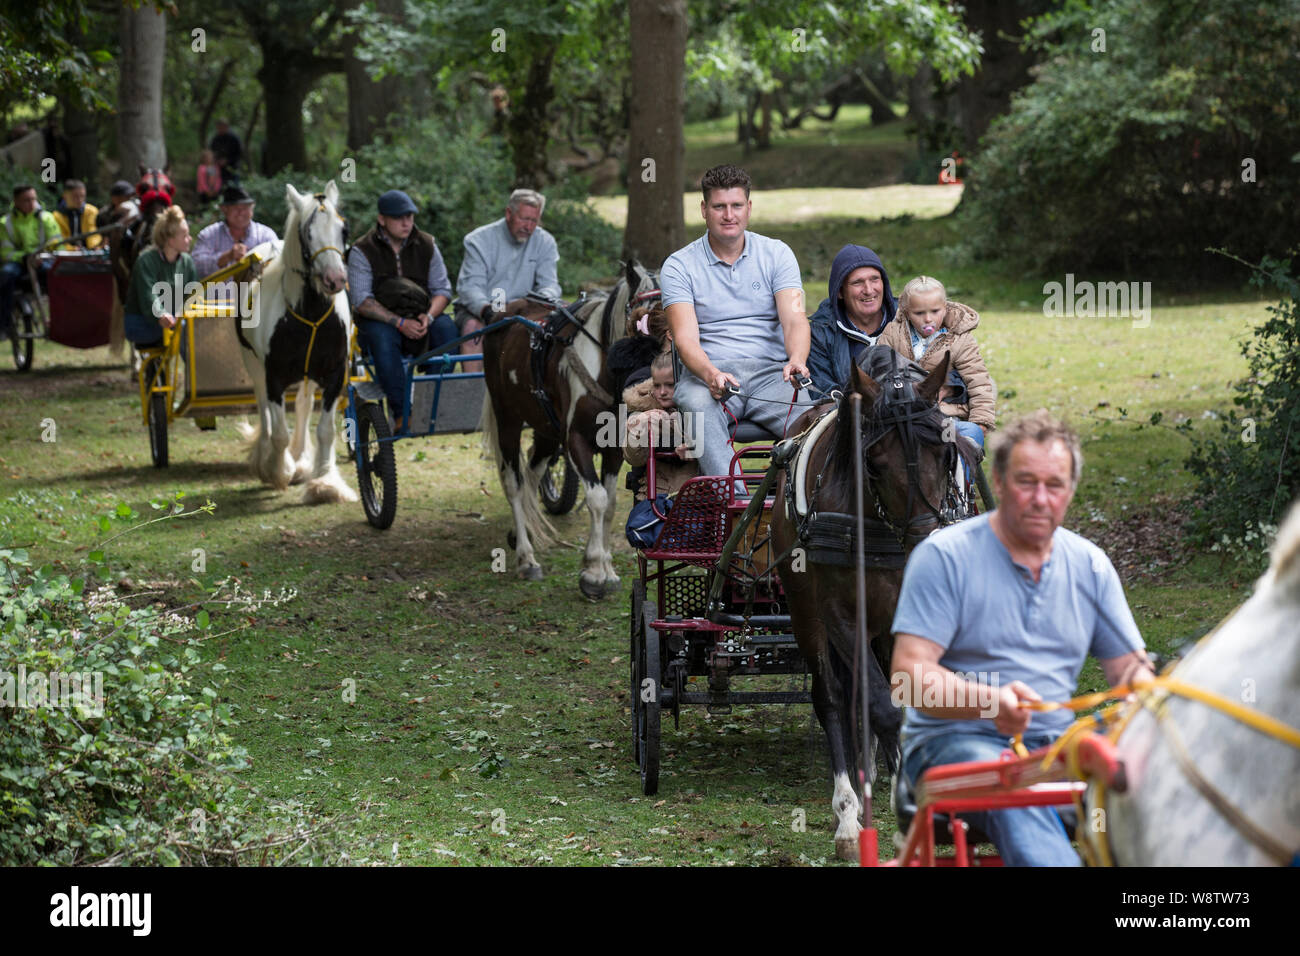 Romani Gypsy travellers meet up for an annual get together in the New Forest. Travelling Community Cart racers at Brockenhurst, Hampshire, England, UK Stock Photo